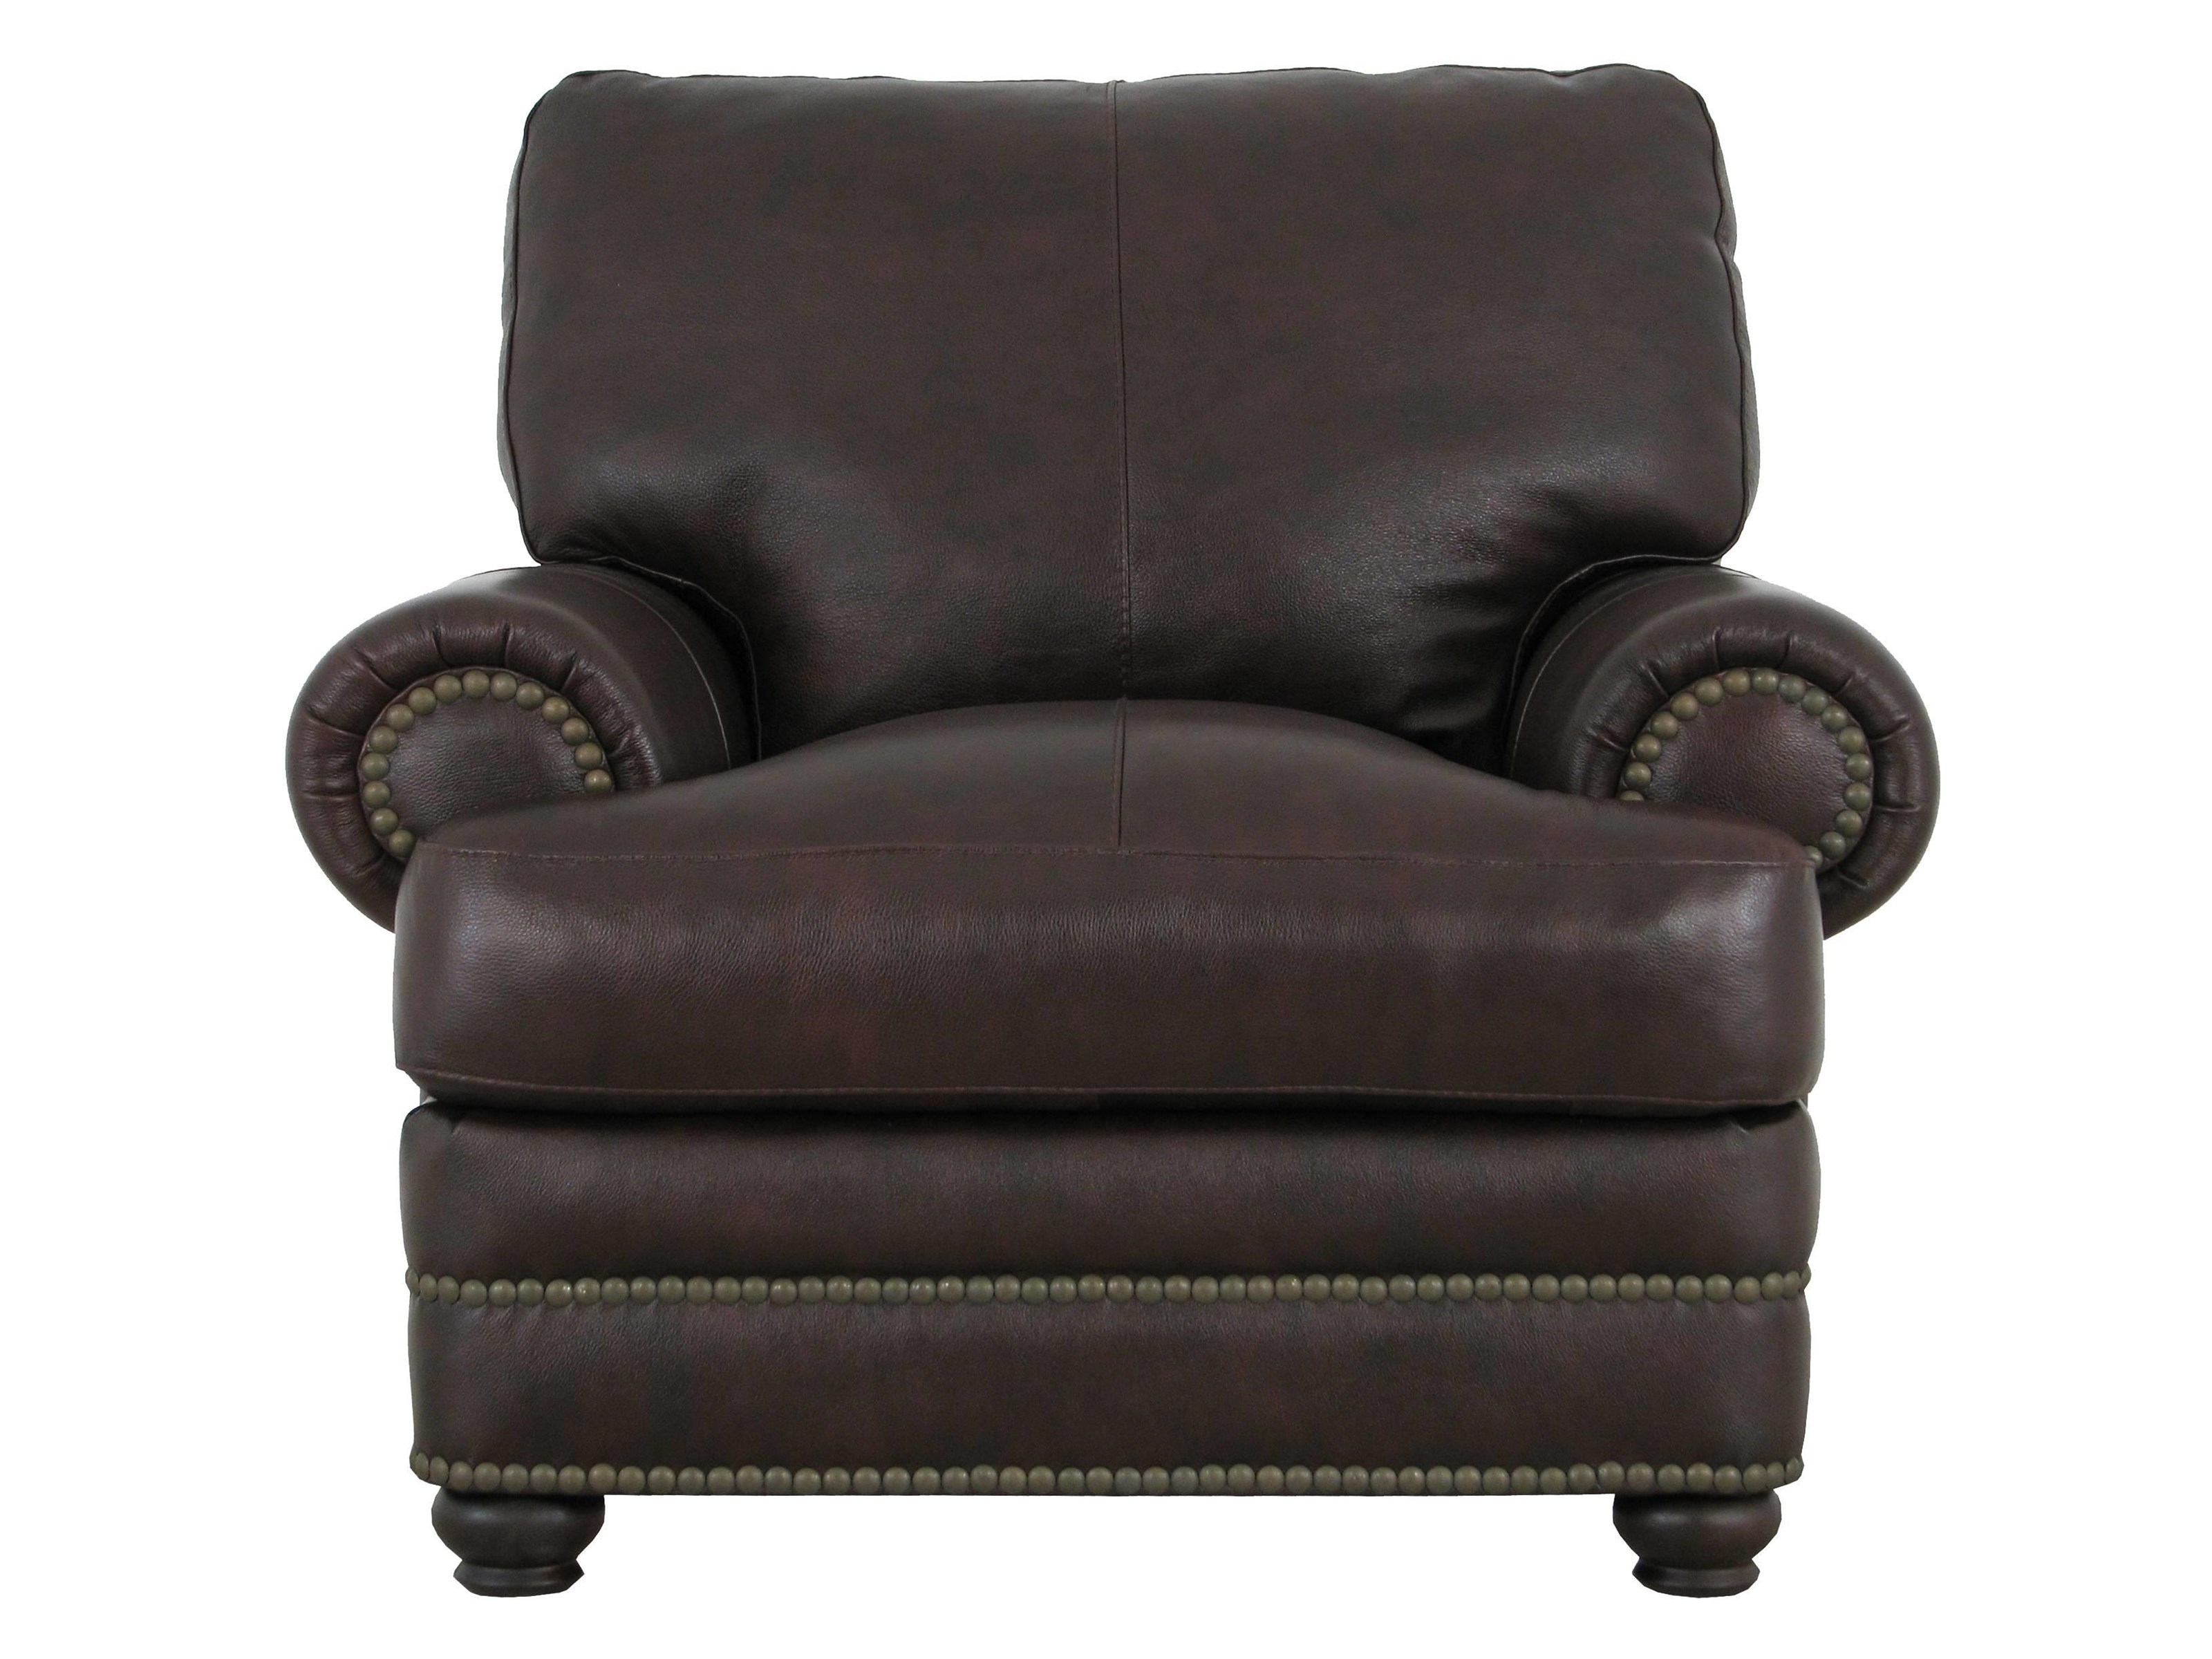 Soft Line 7103 Leather Chair - Item Number: 7103Chair